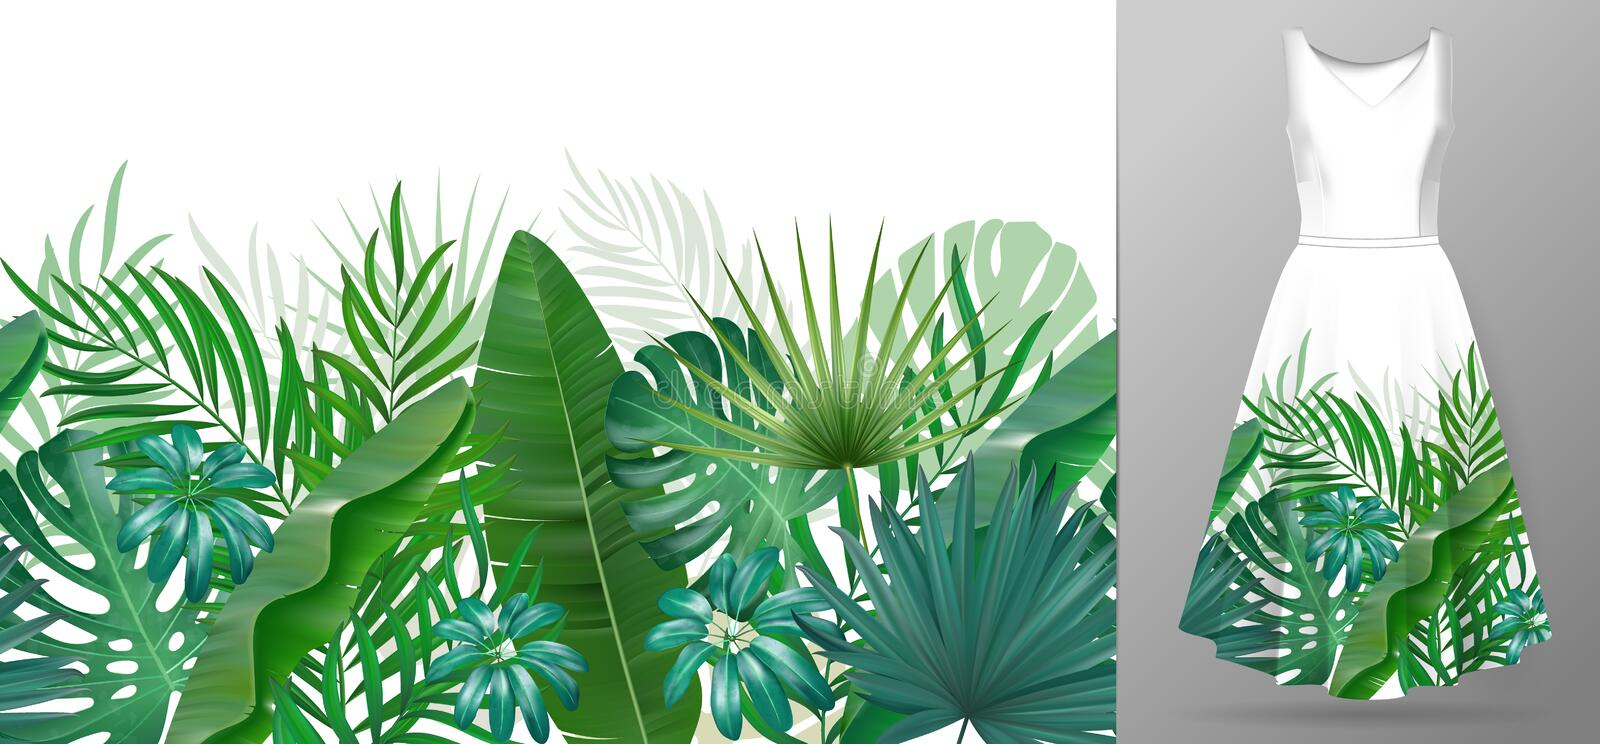 Hand drawn realistic branches and leaves of tropical plants. Vivid line horizontal leaves pattern. Green seamless border royalty free illustration